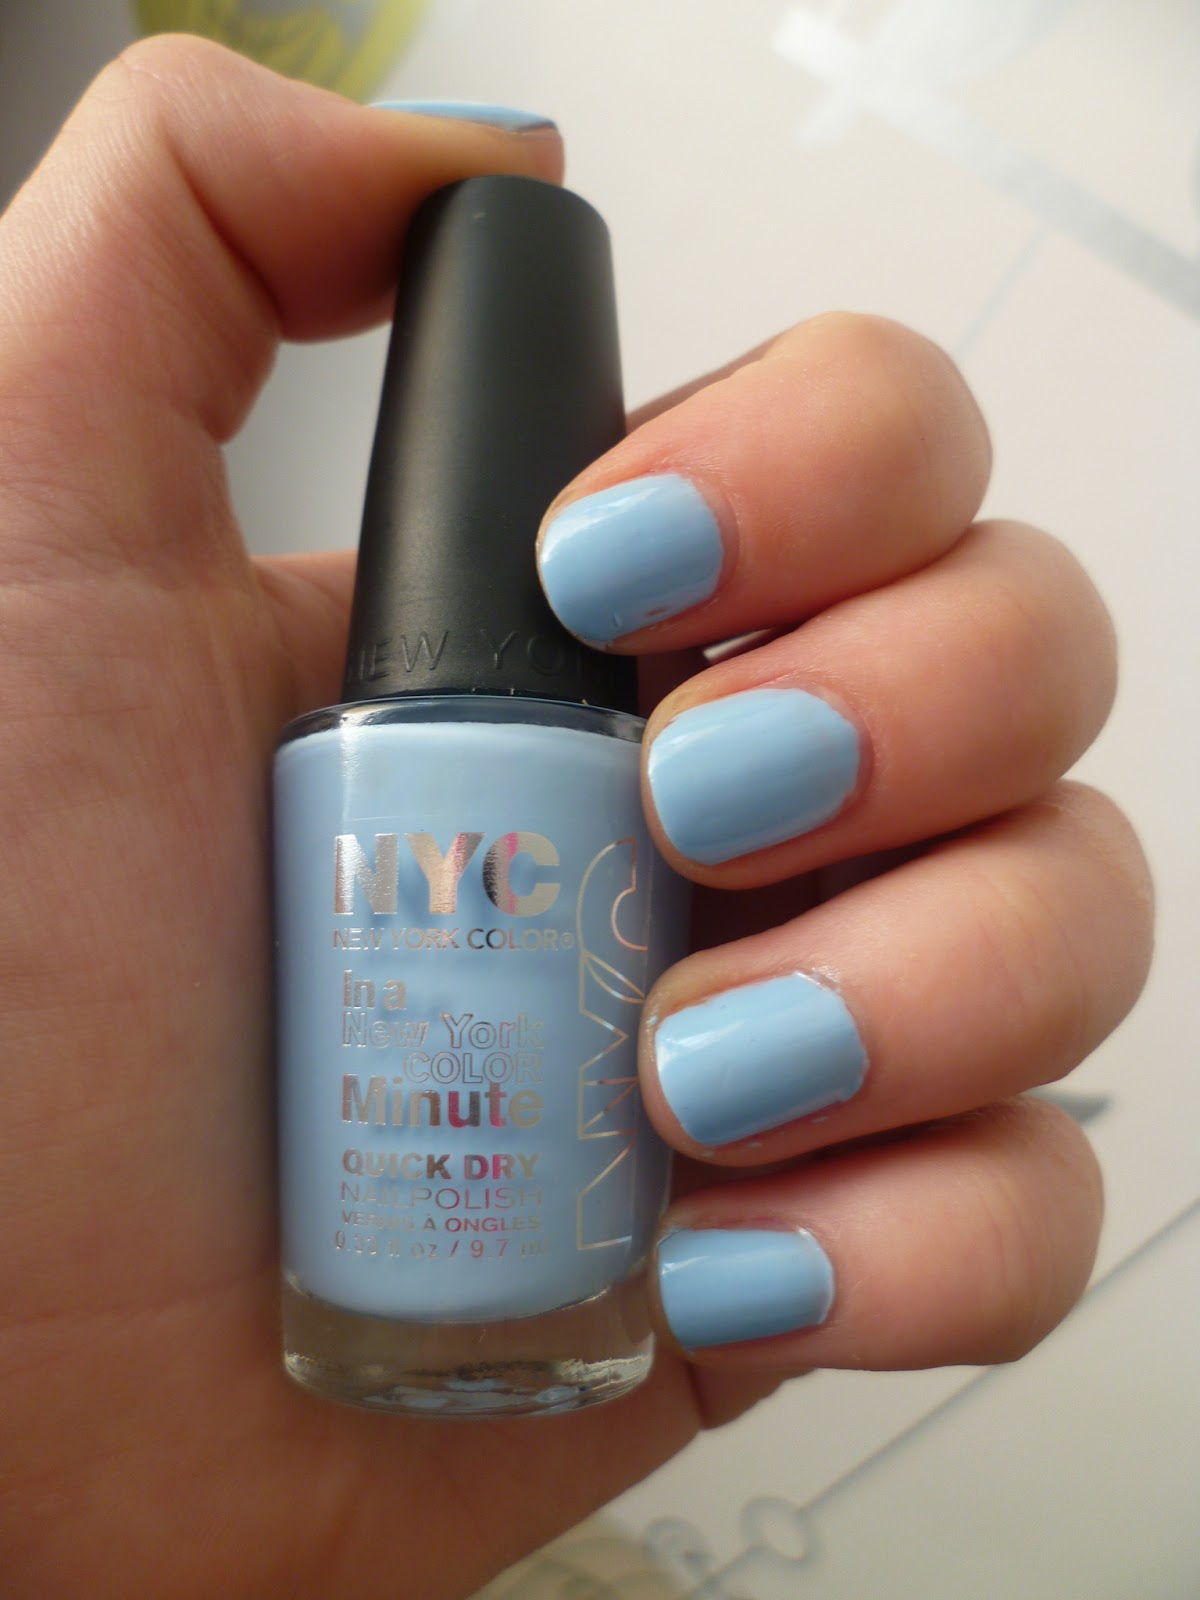 NYC In A New York Colour Minute Quick Dry Nail Polish in 325 ...